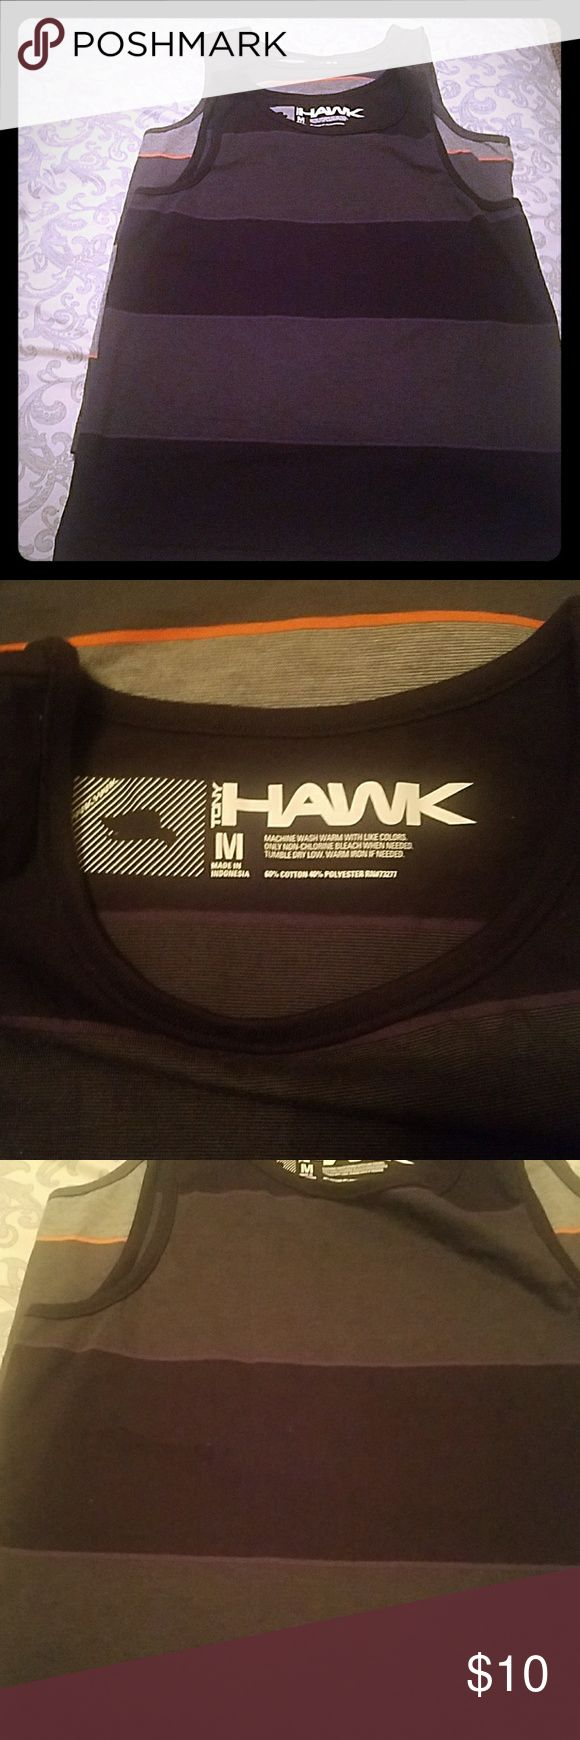 TONY HAWK Tanks NWOT, 2 boys Tony Hawk tanks, size M, 1 black, purple, and gray, 1 dark gray striped; 1 light gray, and orange striped, new condition, accepting all reasonable offers, bundle for discounts Tony Hawk Shirts & Tops Tank Tops